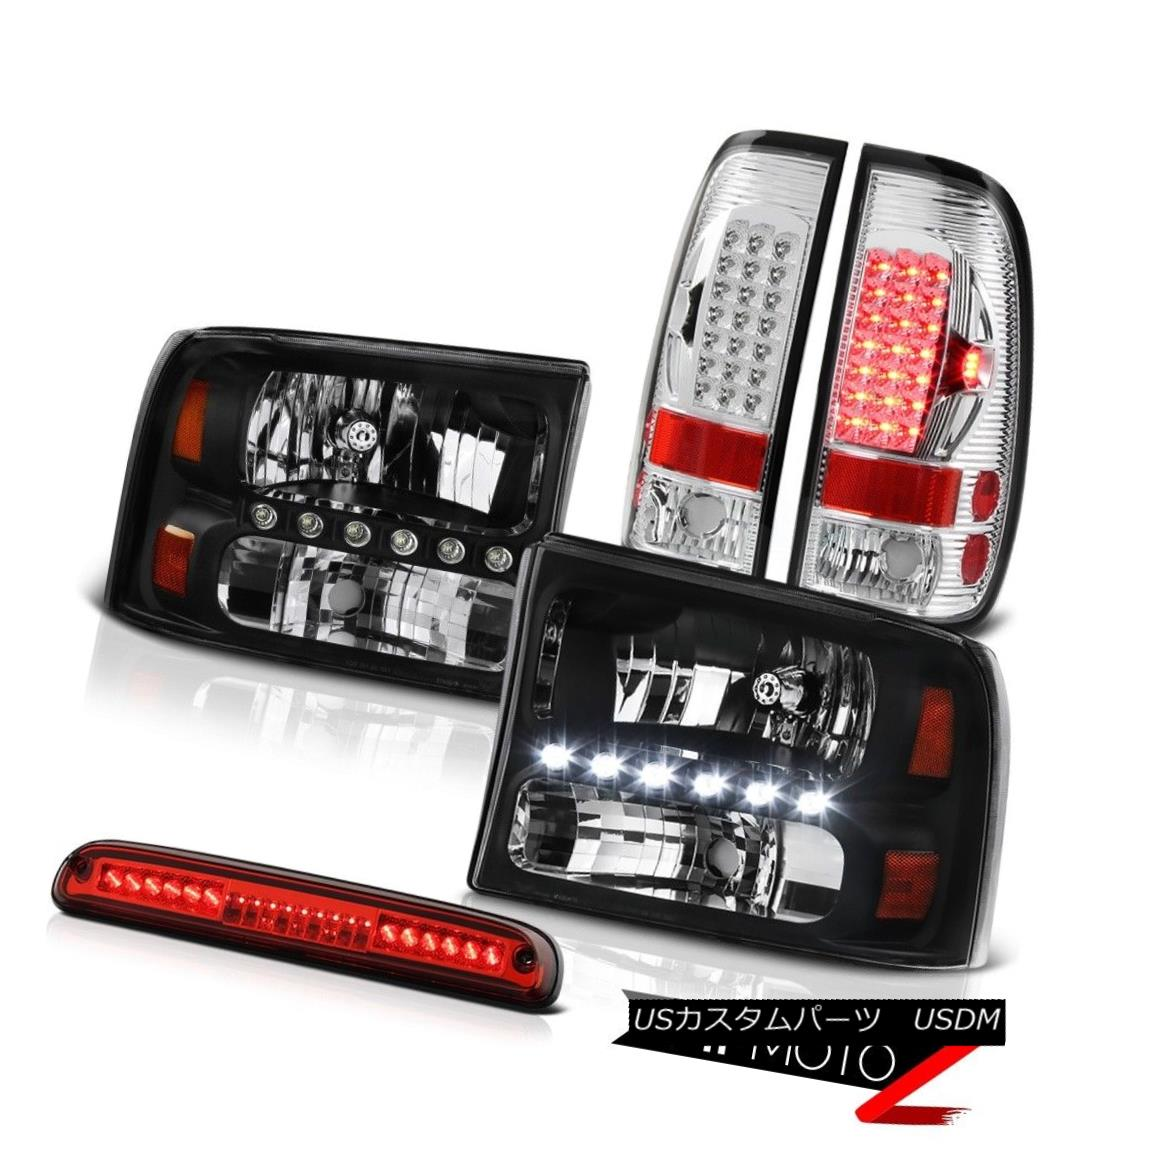 テールライト 1999-2004 F350 XLT Black Headlight Headlamps BRIGHTEST LED TailLight Third Brake 1999-2004 F350 XLTブラックヘッドライトヘッドライトBRIGHTEST LED TailLight Third Brake